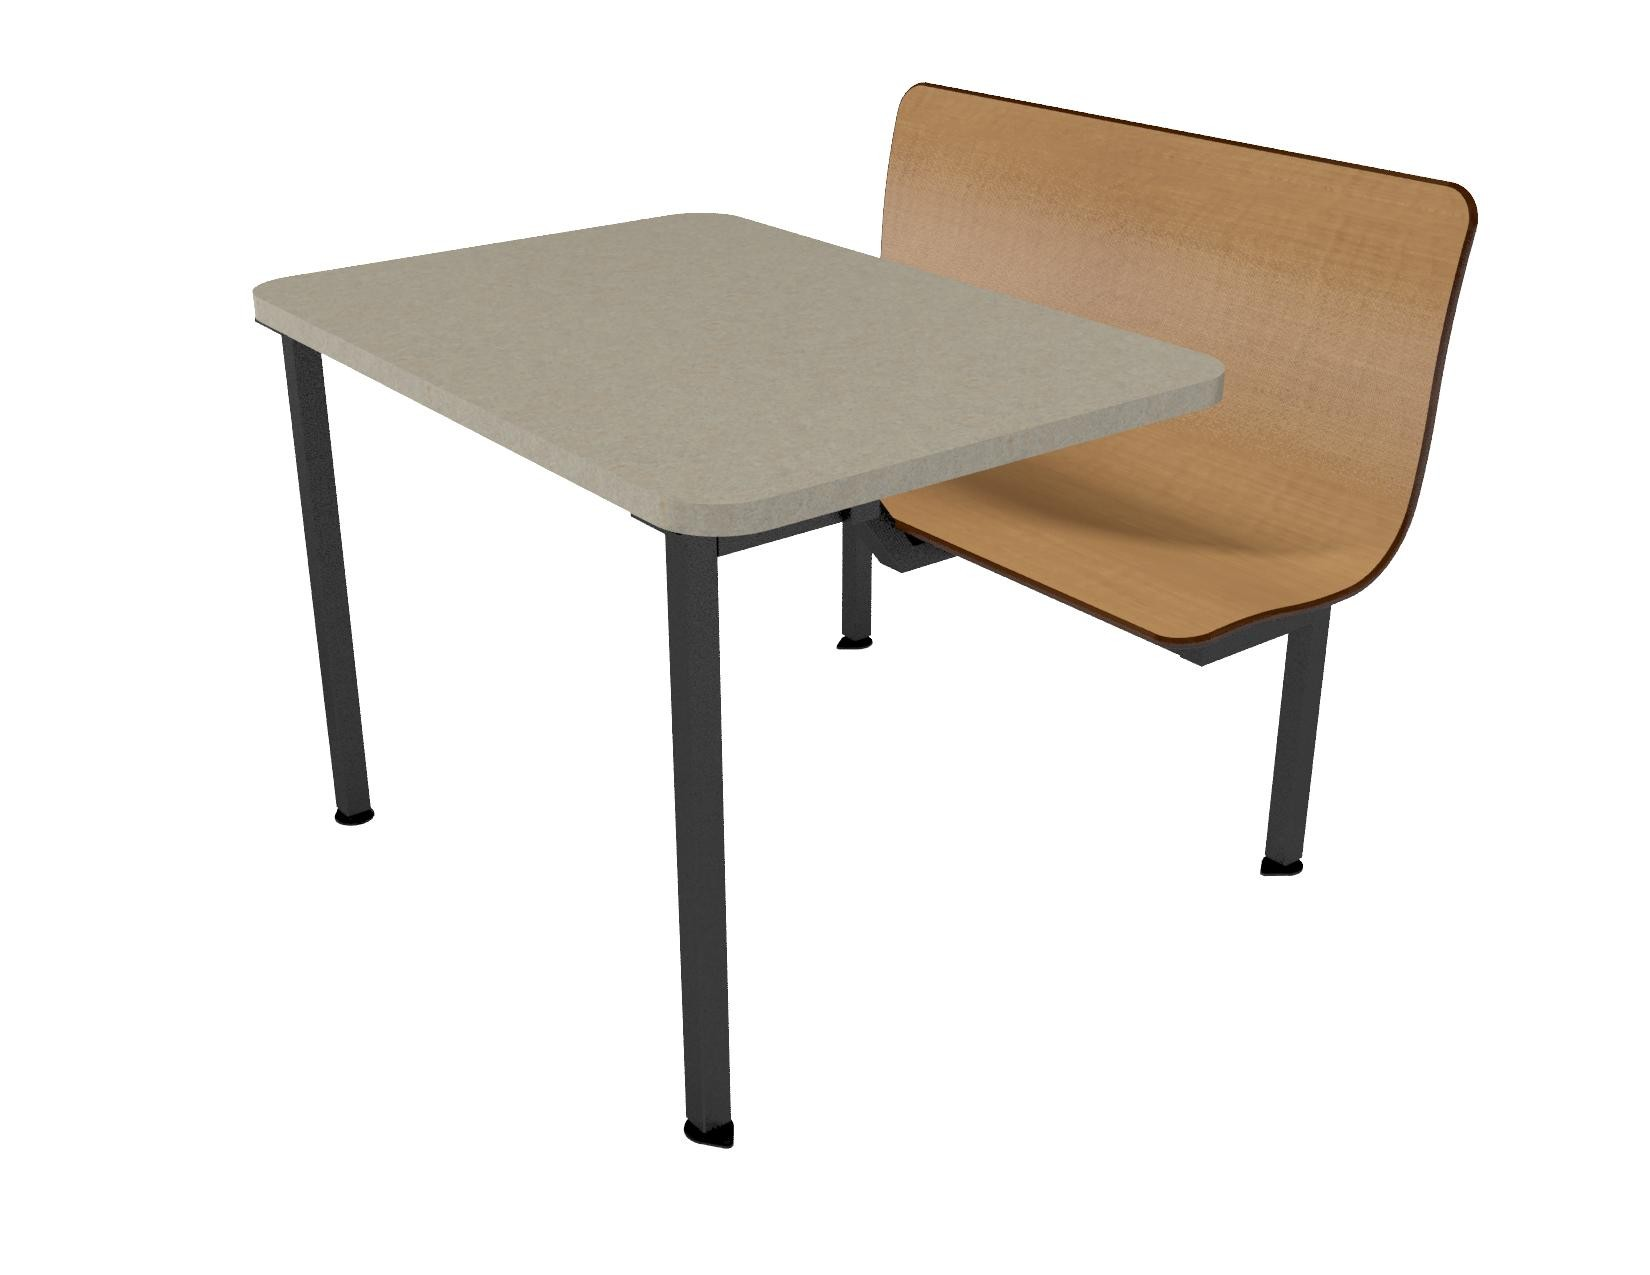 Contour ADA Island Unit With Laminate Self Edge Table - Ada restaurant table